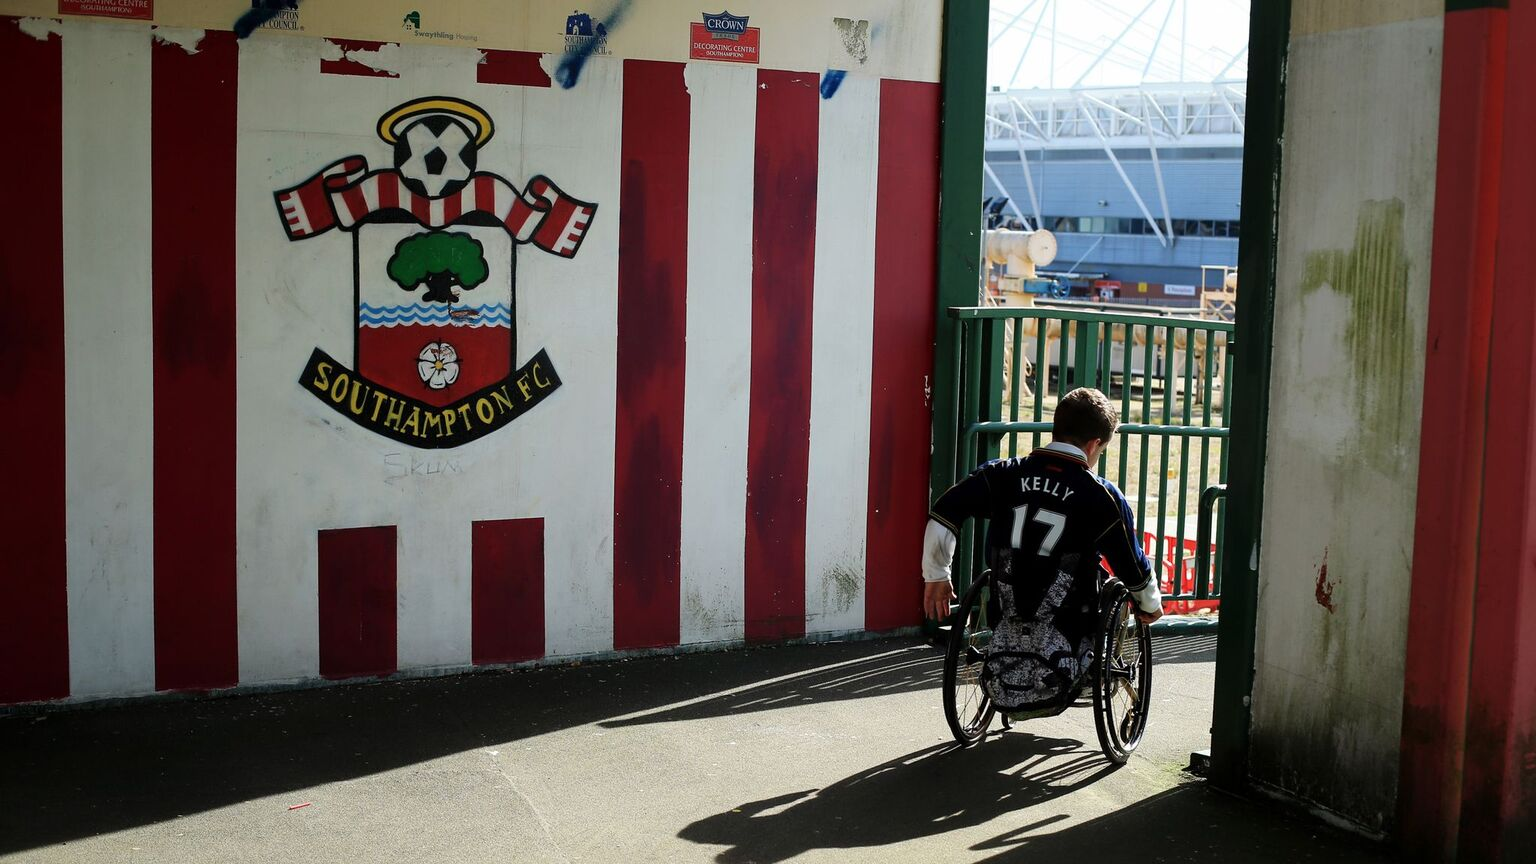 The truth of Disabled sports fandom – survey reveals significant shortcomings in access